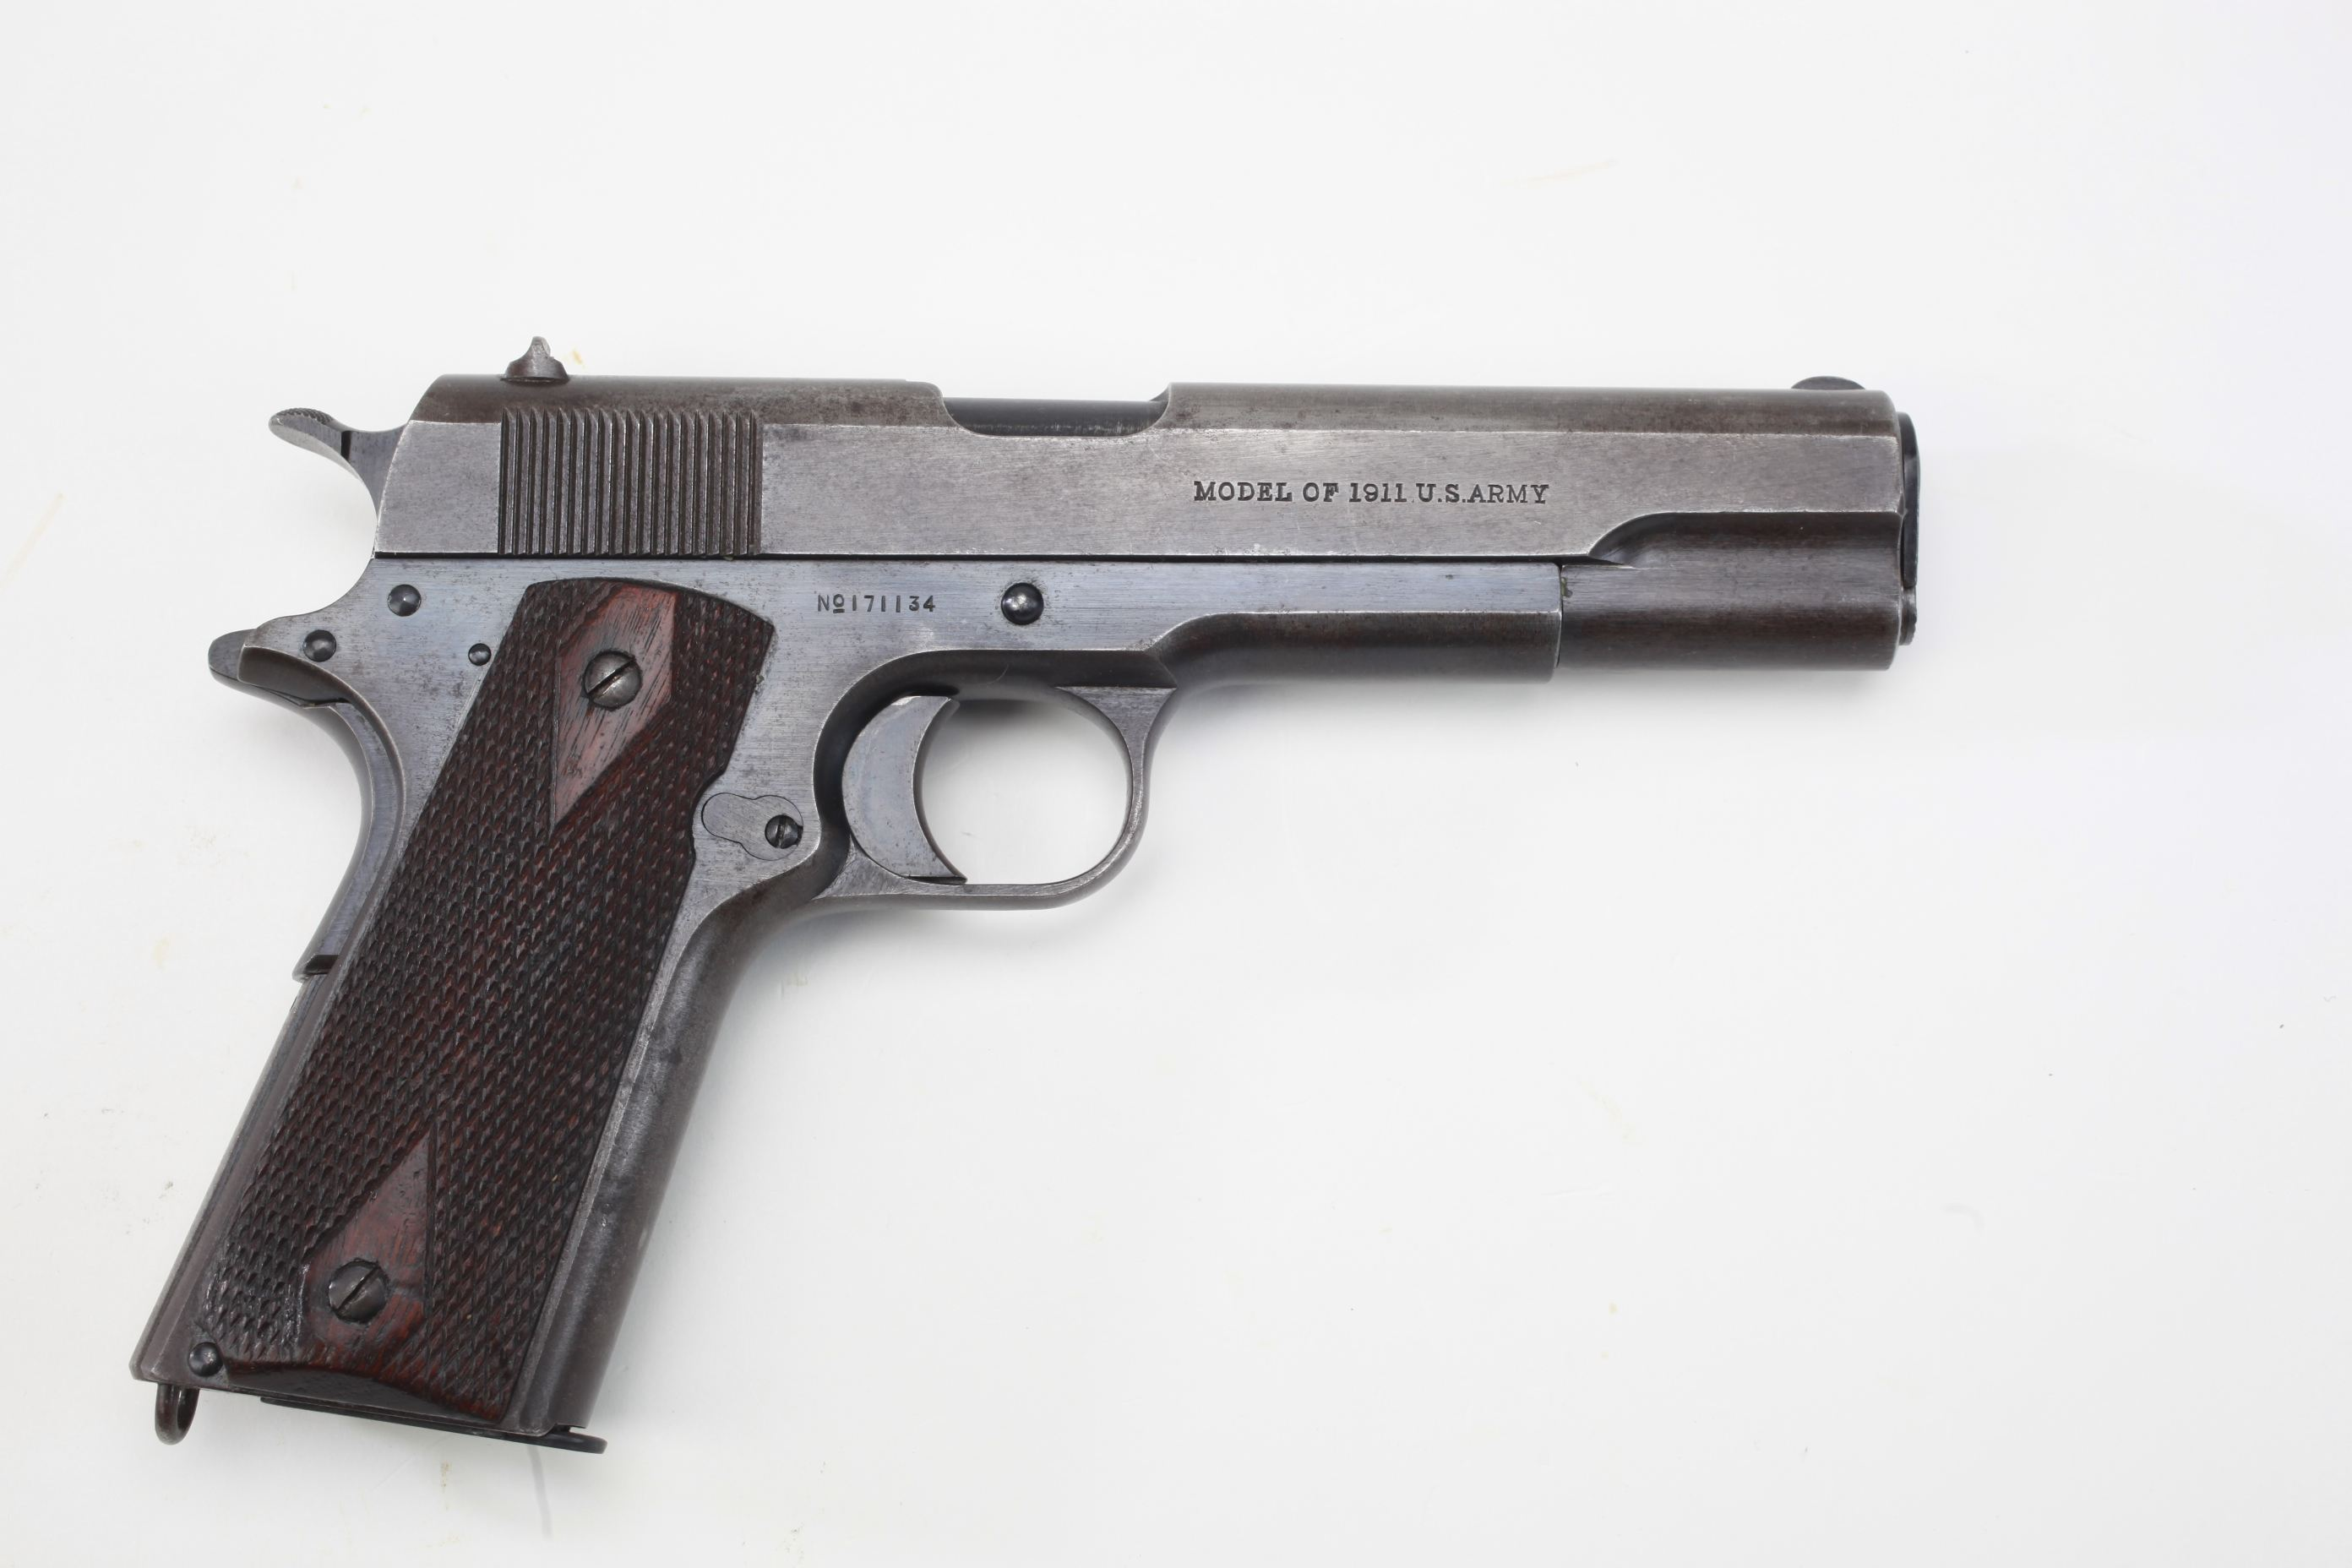 U.S. Colt Model 1911 Semi Automatic Pistol